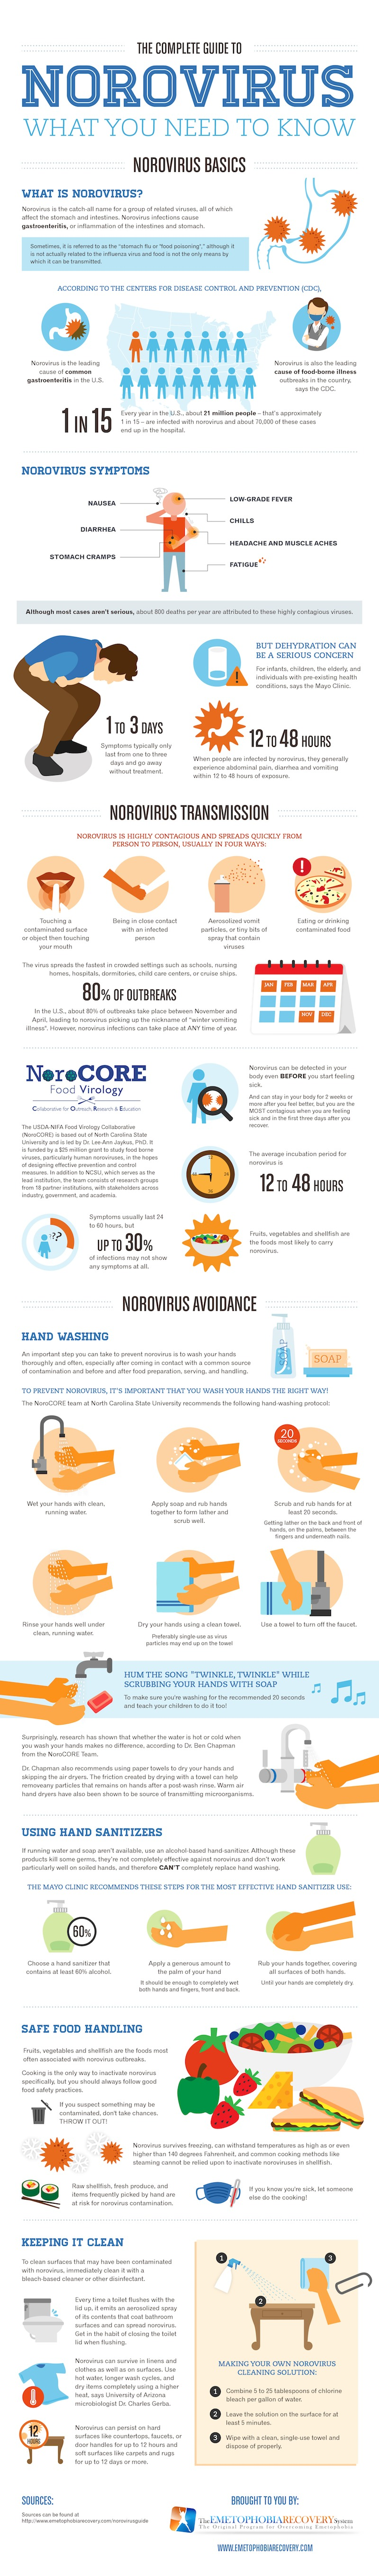 The Complete Guide to Norovirus